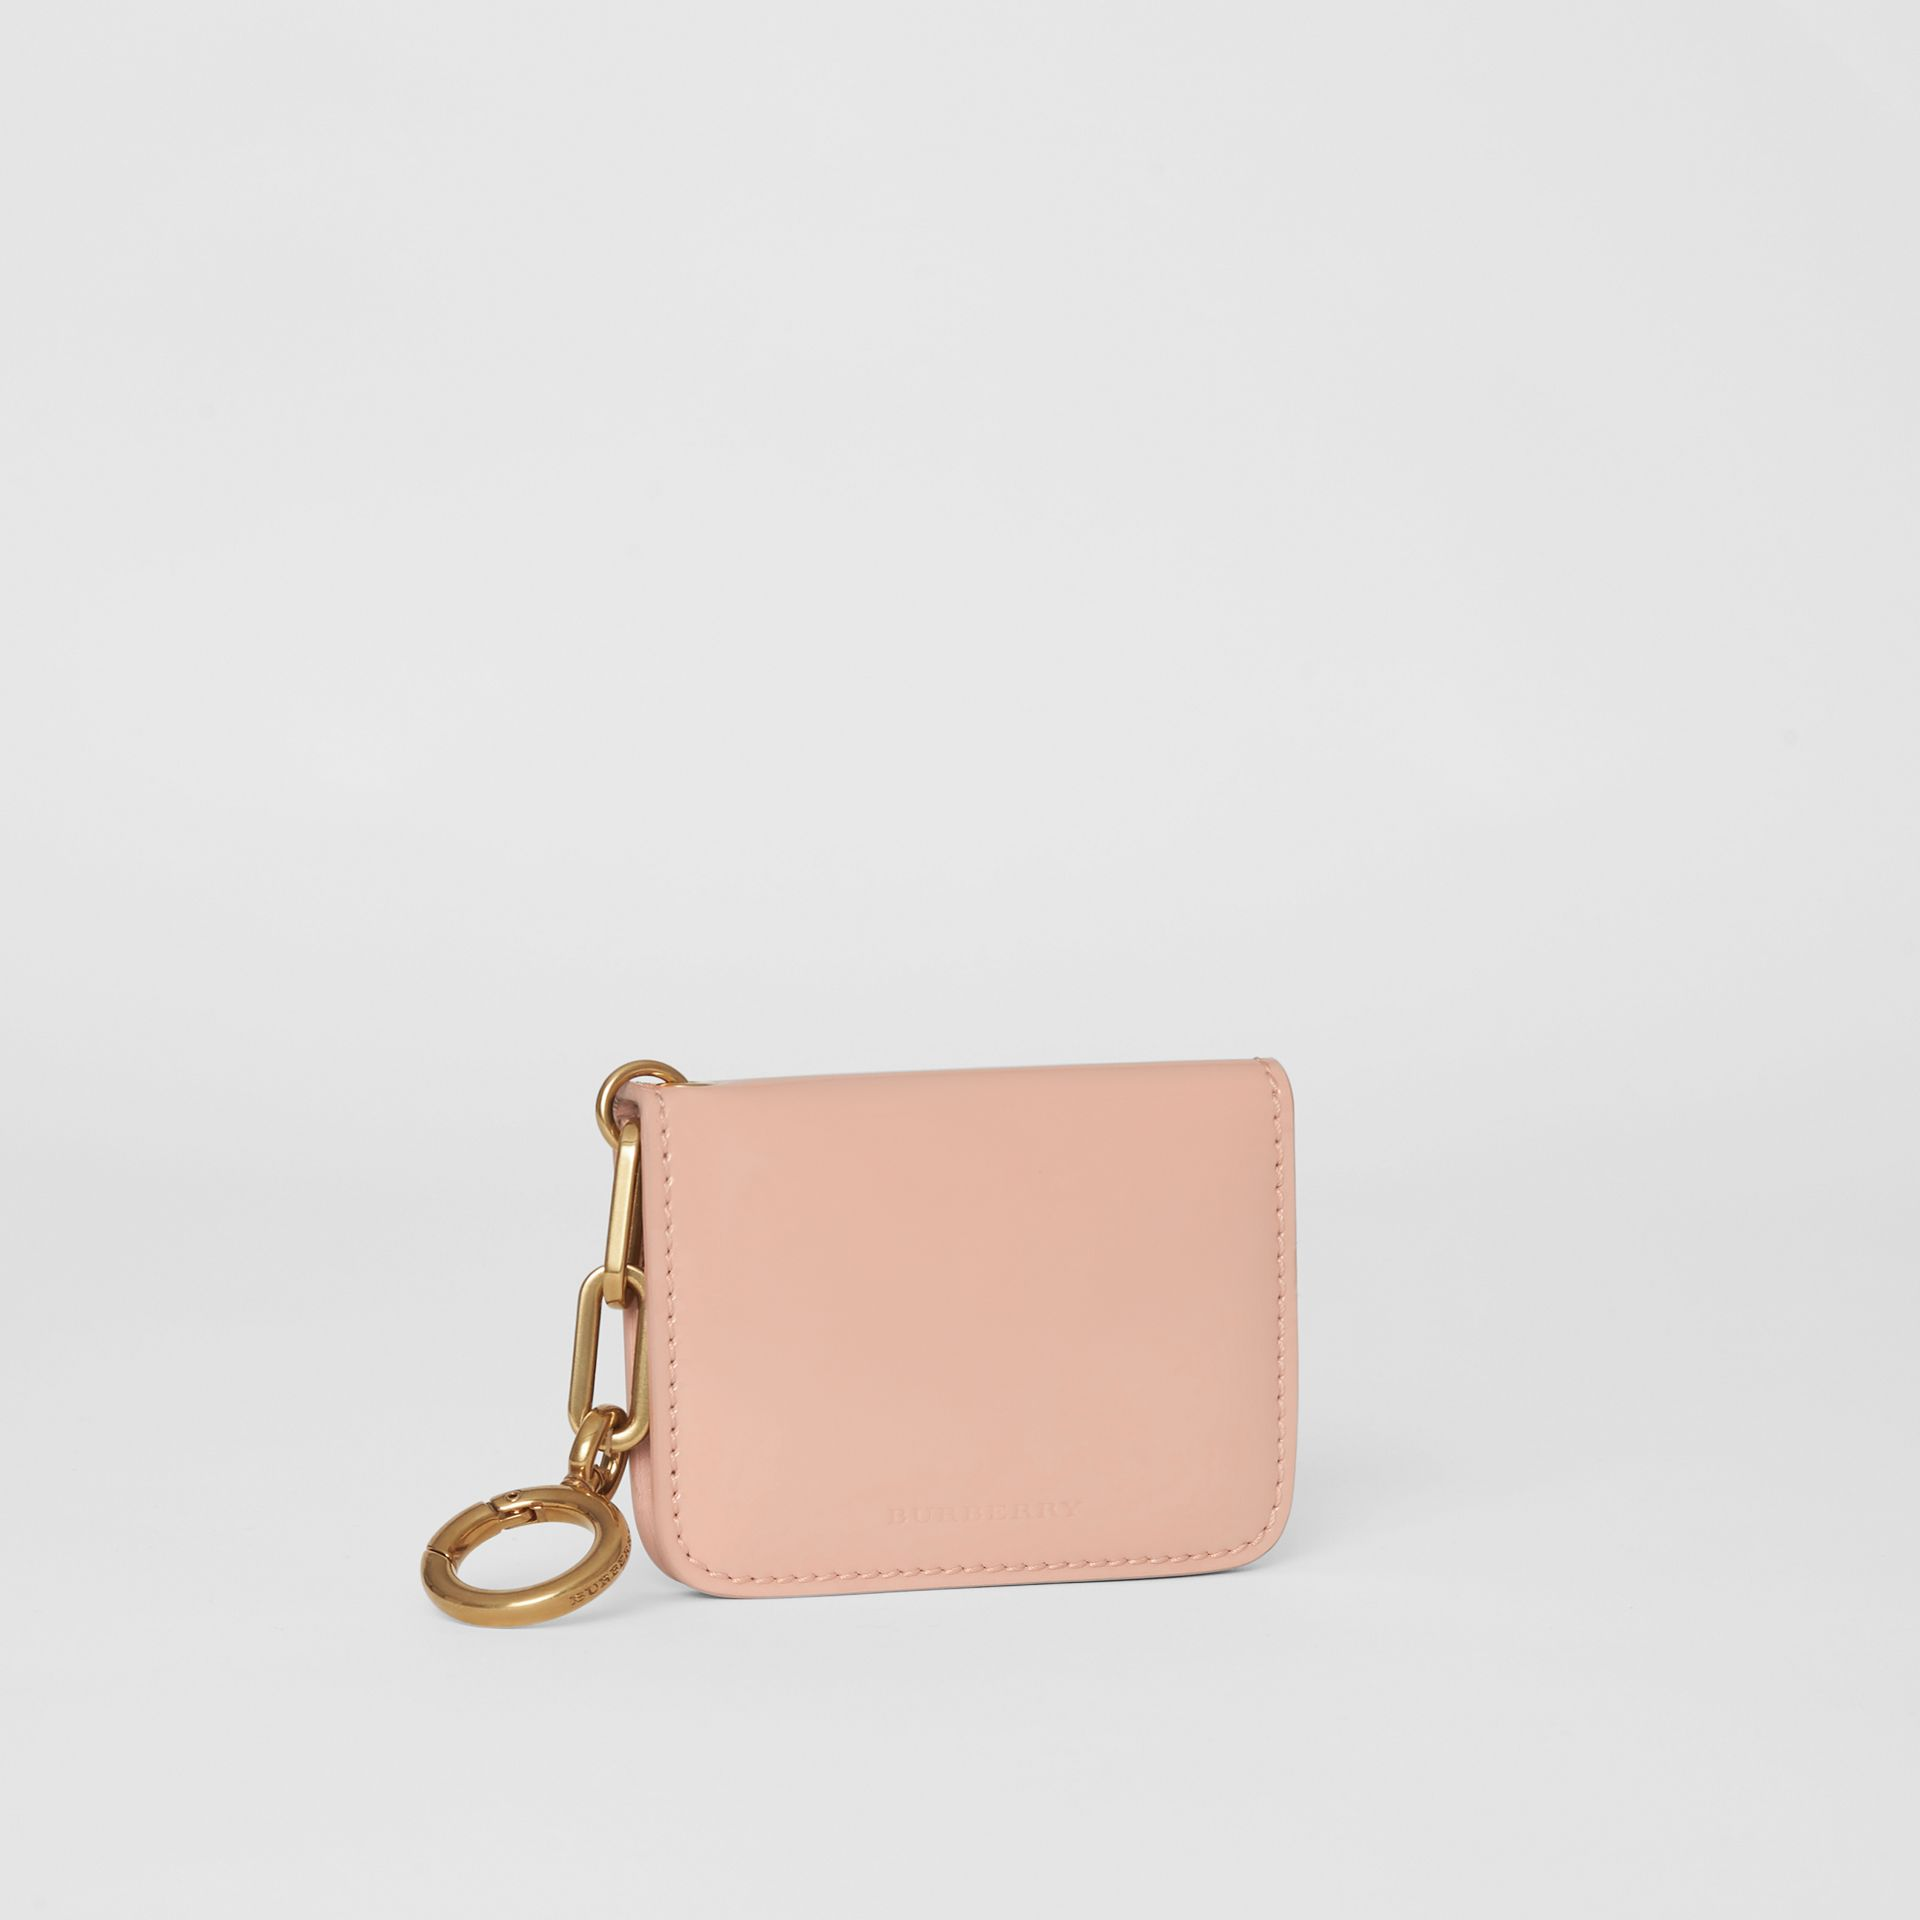 Link Detail Patent Leather ID Card Case Charm in Pale Fawn Pink - Women | Burberry United States - gallery image 4